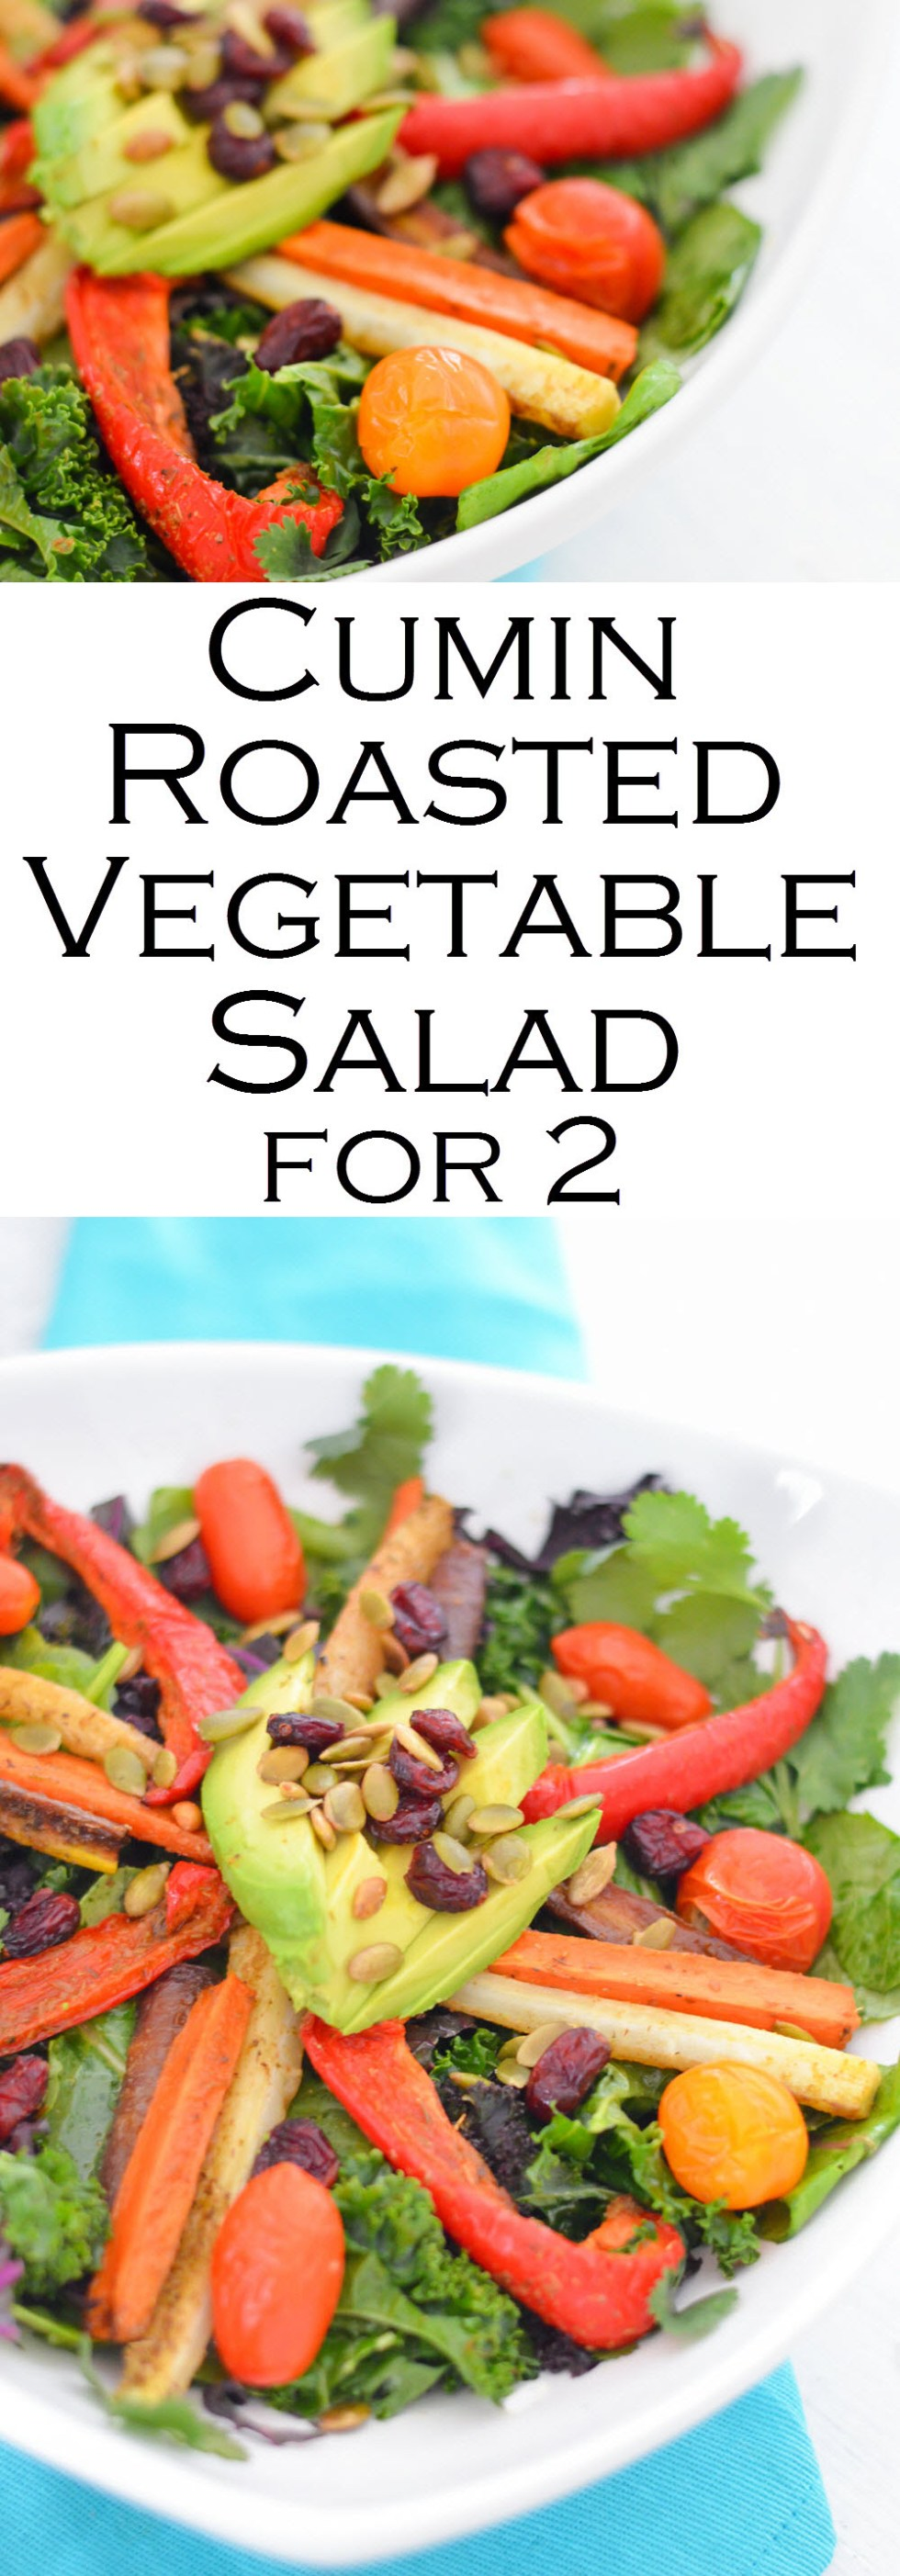 Cumin Roasted Vegetable Salad - Healthy, Vegan Entree Recipe for 2